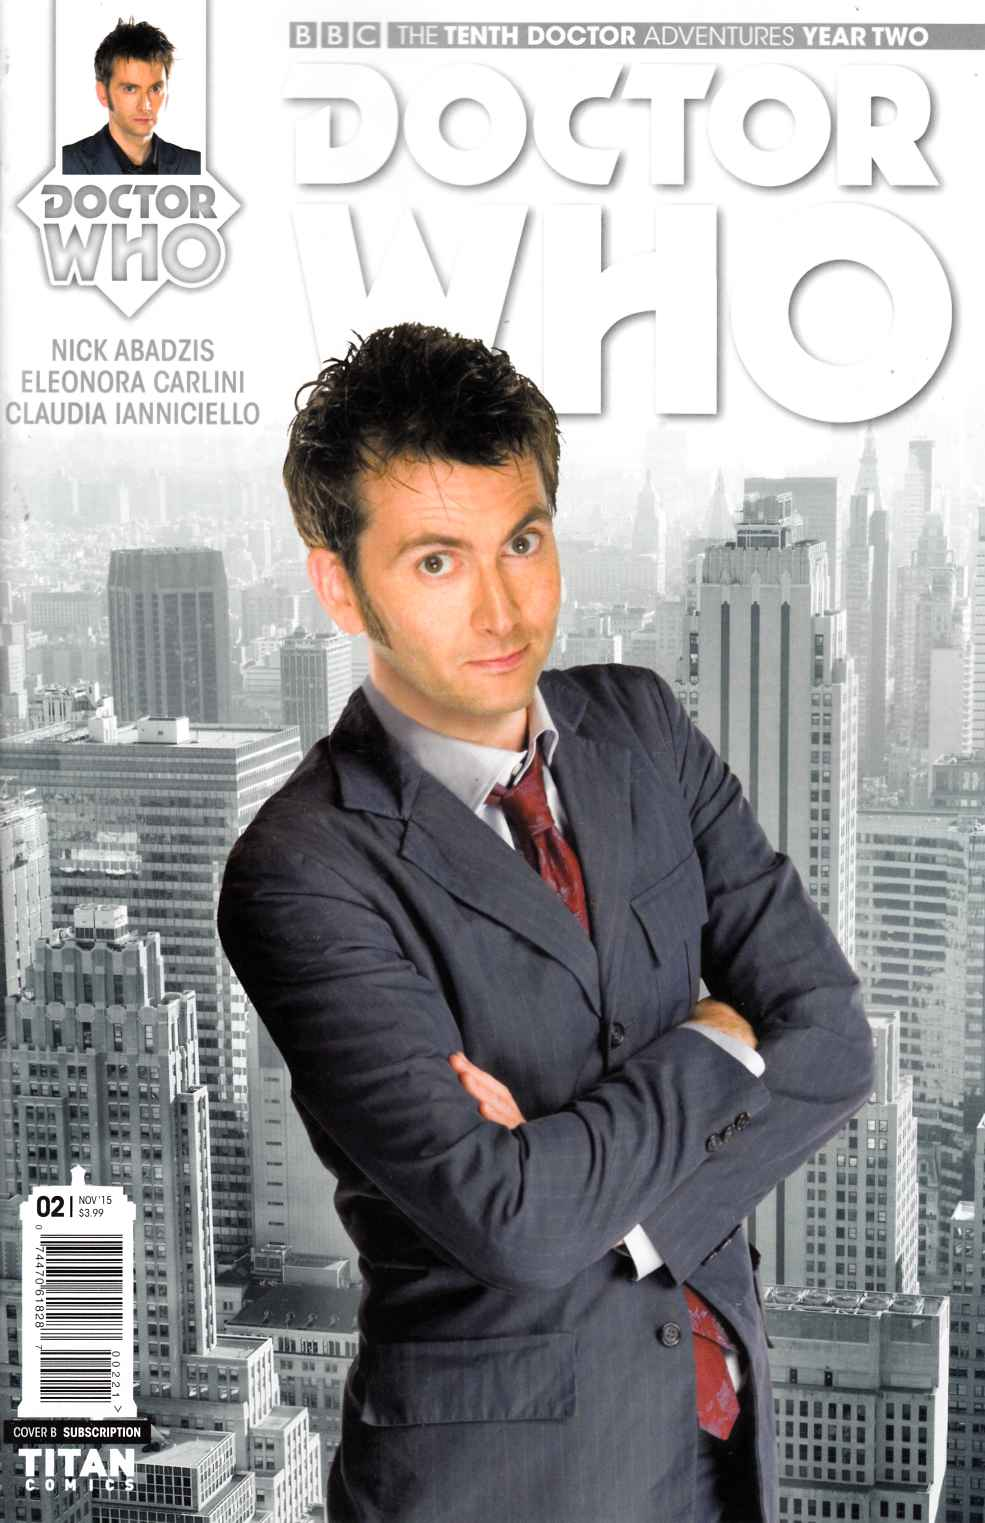 Doctor Who 10th Doctor Year 2 #2 Subscription Photo Variant Cover [Titan Comic]_THUMBNAIL